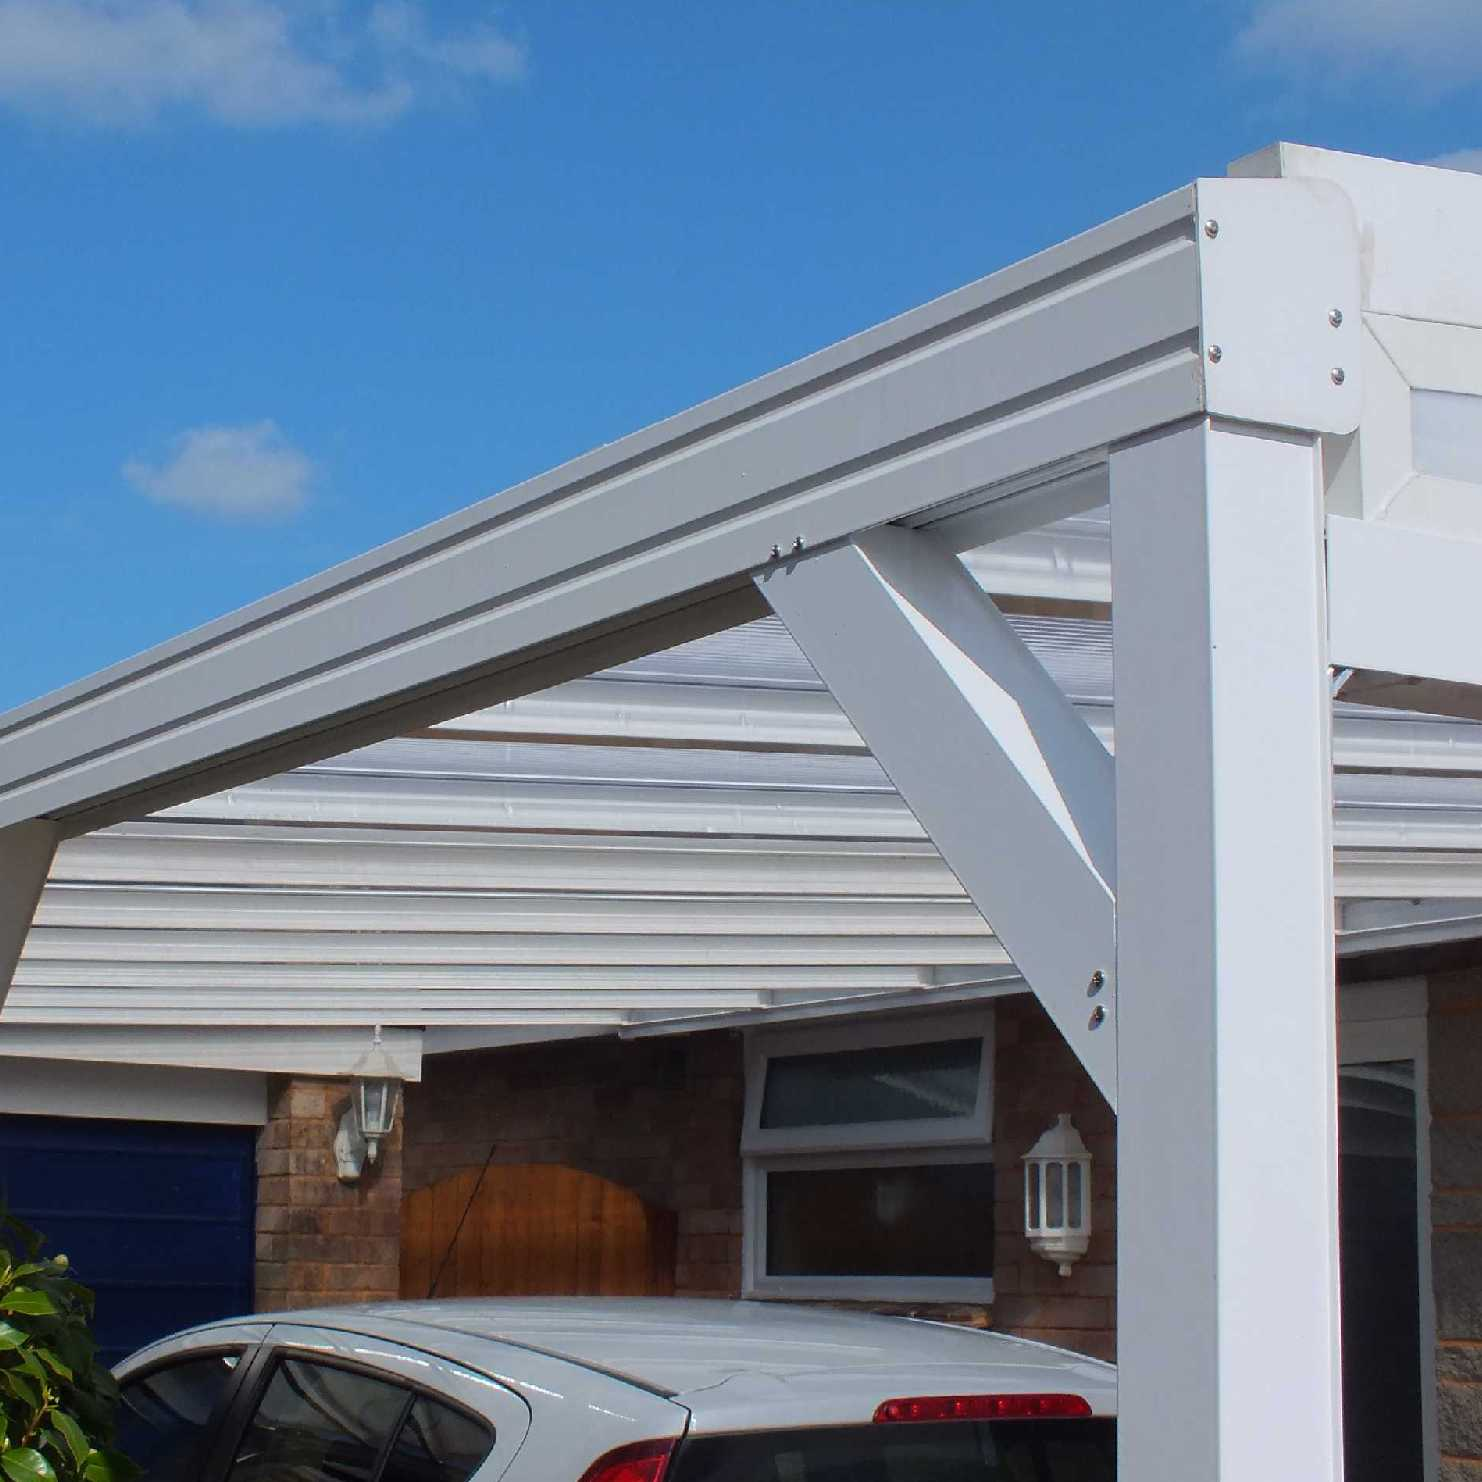 Buy Omega Smart White Lean-To Canopy with 16mm Polycarbonate Glazing - 7.4m (W) x 1.5m (P), (4) Supporting Posts online today